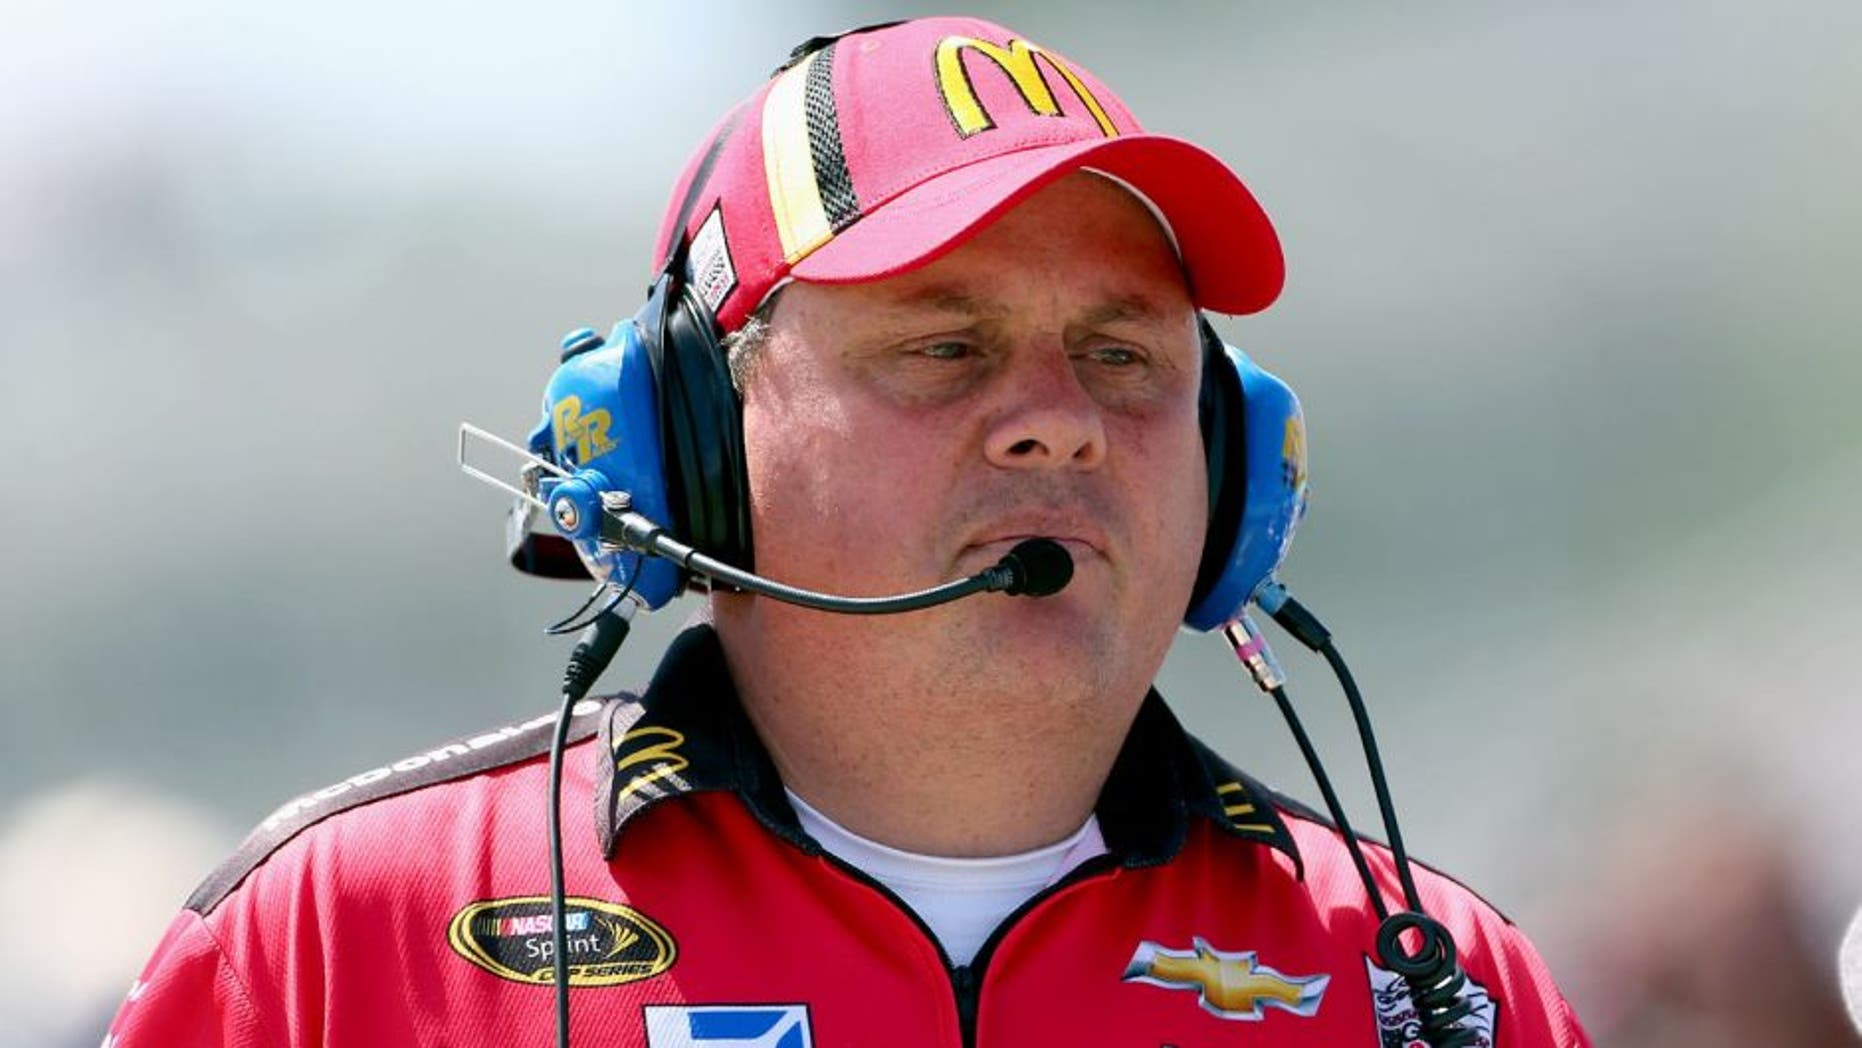 WATKINS GLEN, NY - AUGUST 10: Kevin Manion, crew chief of the #1 McDonald's/Monopoly Chevrolet, during qualifying for the NASCAR Sprint Cup Series Cheez-It 355 at The Glen at Watkins Glen International on August 10, 2013 in Watkins Glen, New York. (Photo by Todd Warshaw/Getty Images)